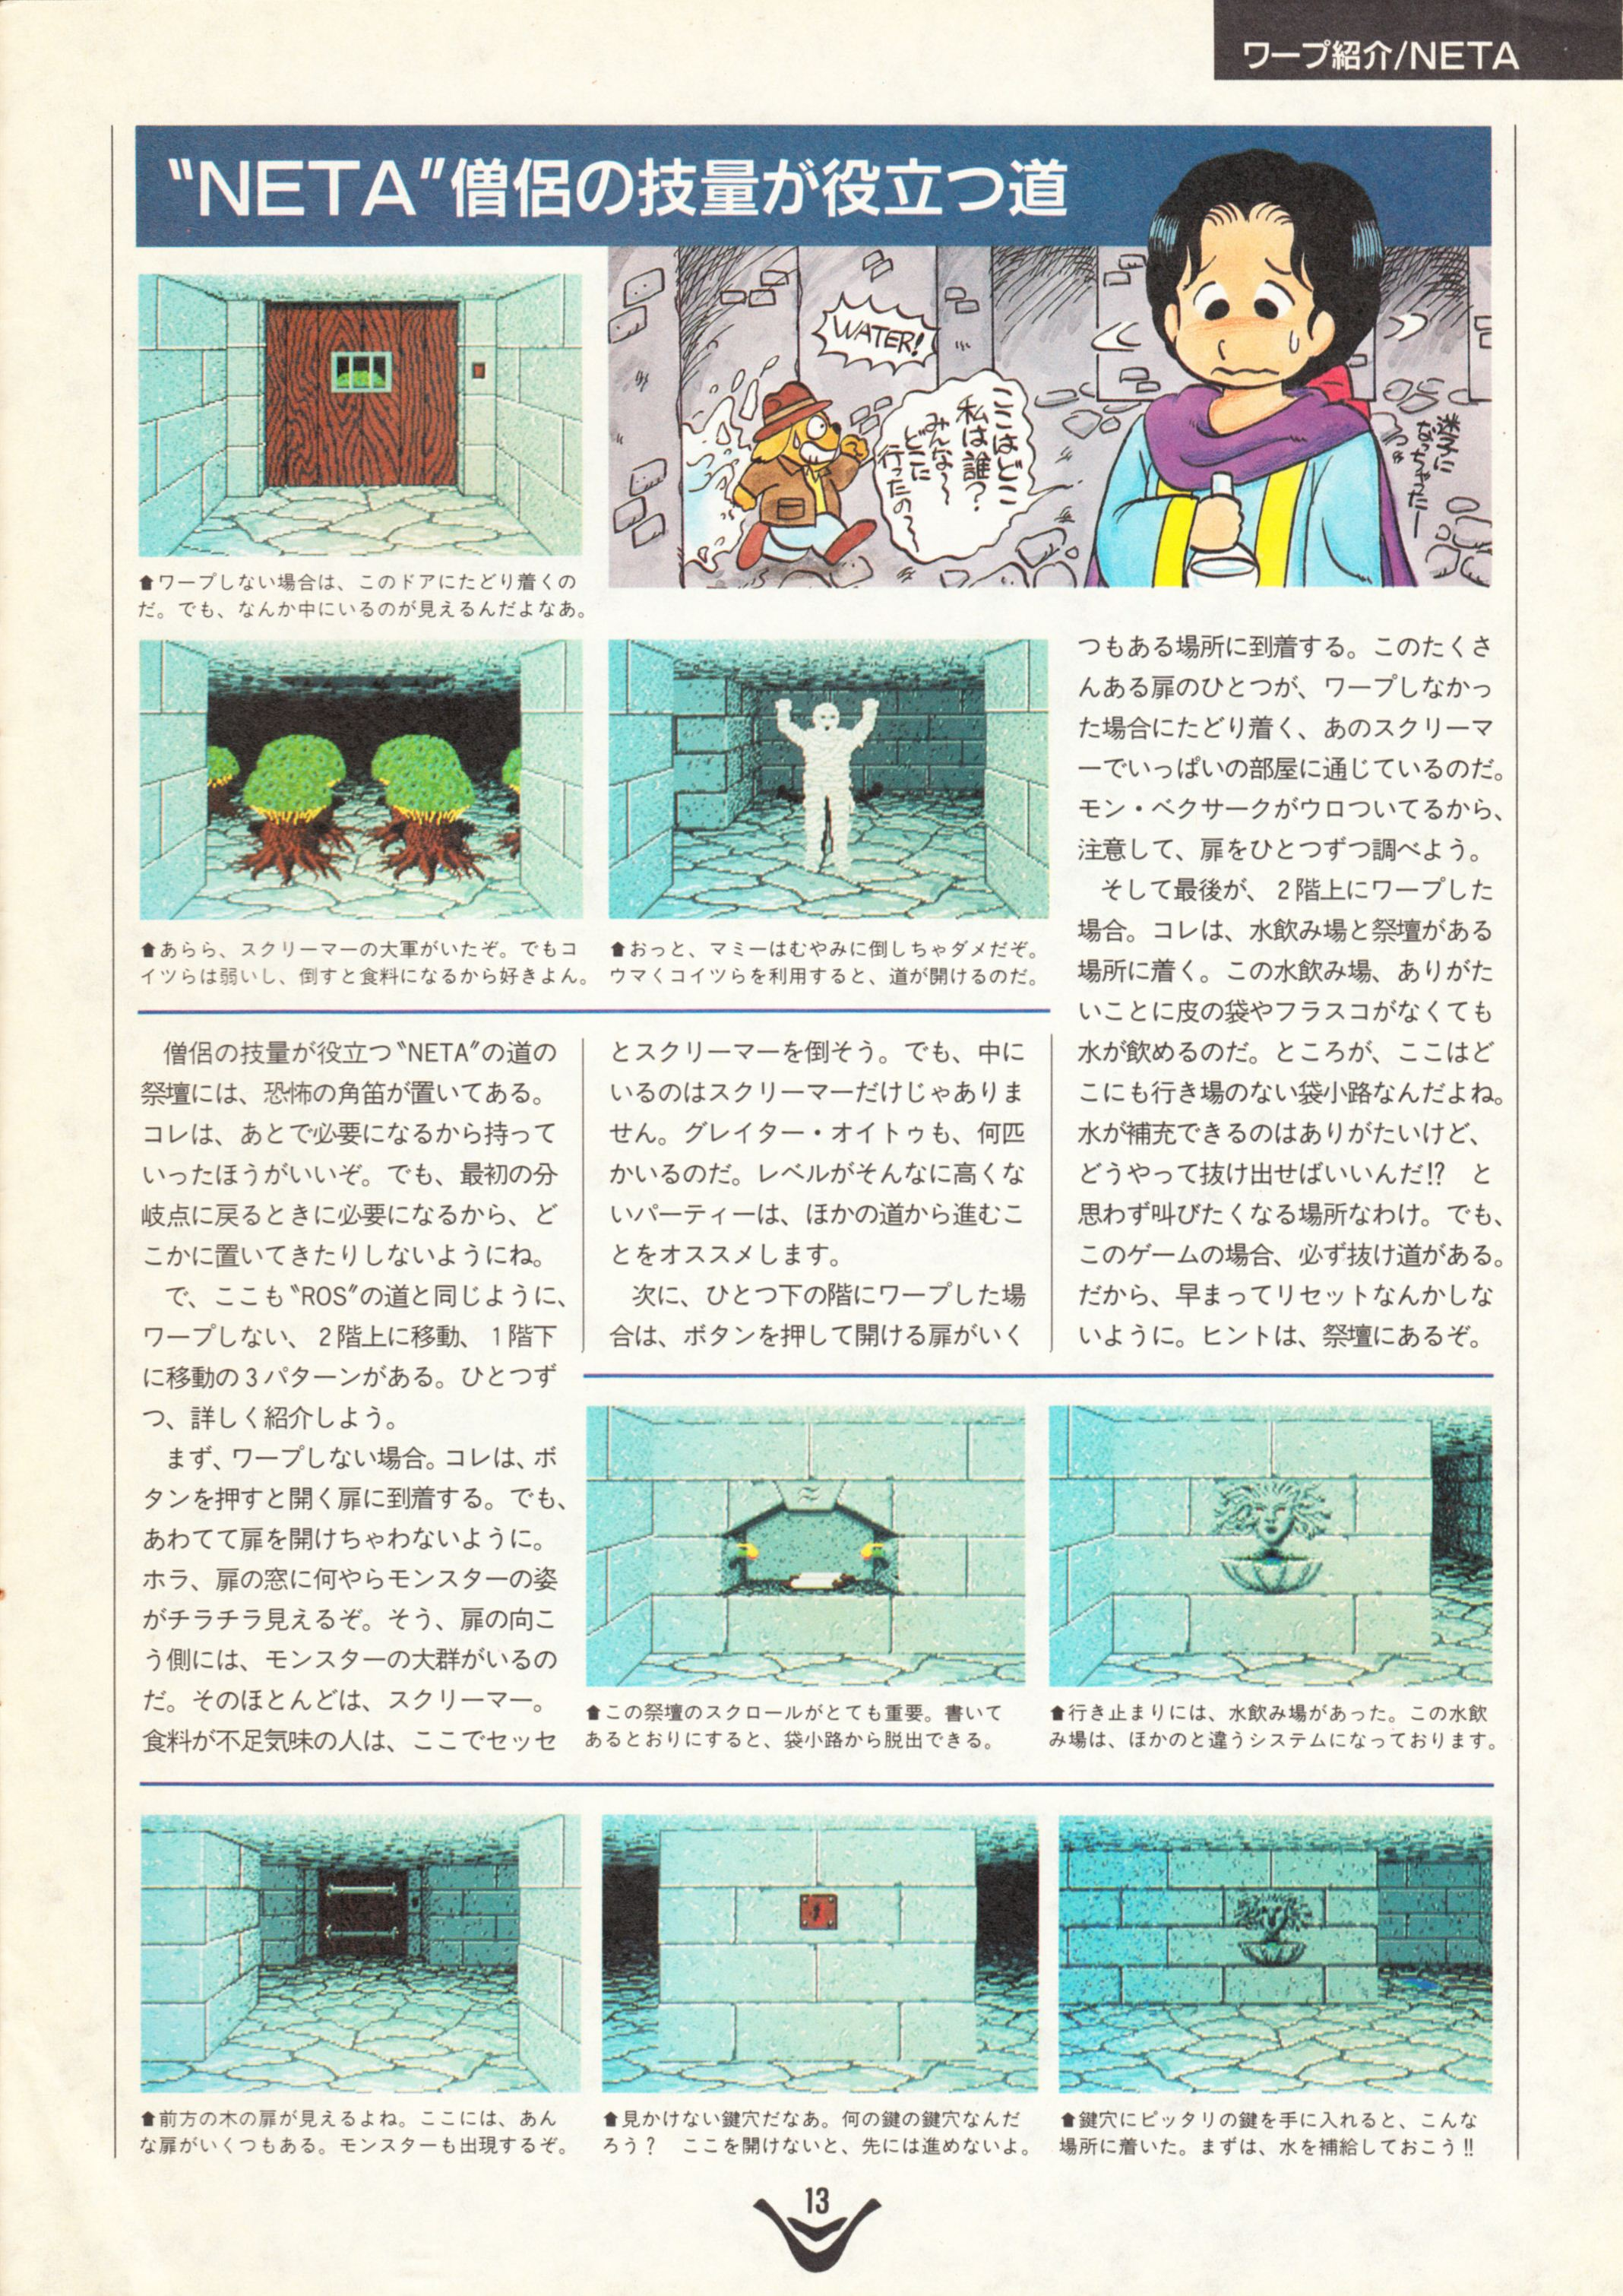 Special Supplement - Chaos Strikes Back Guide published in Japanese magazine 'Login', Vol 10 No 3 01 February 1991, Page 13